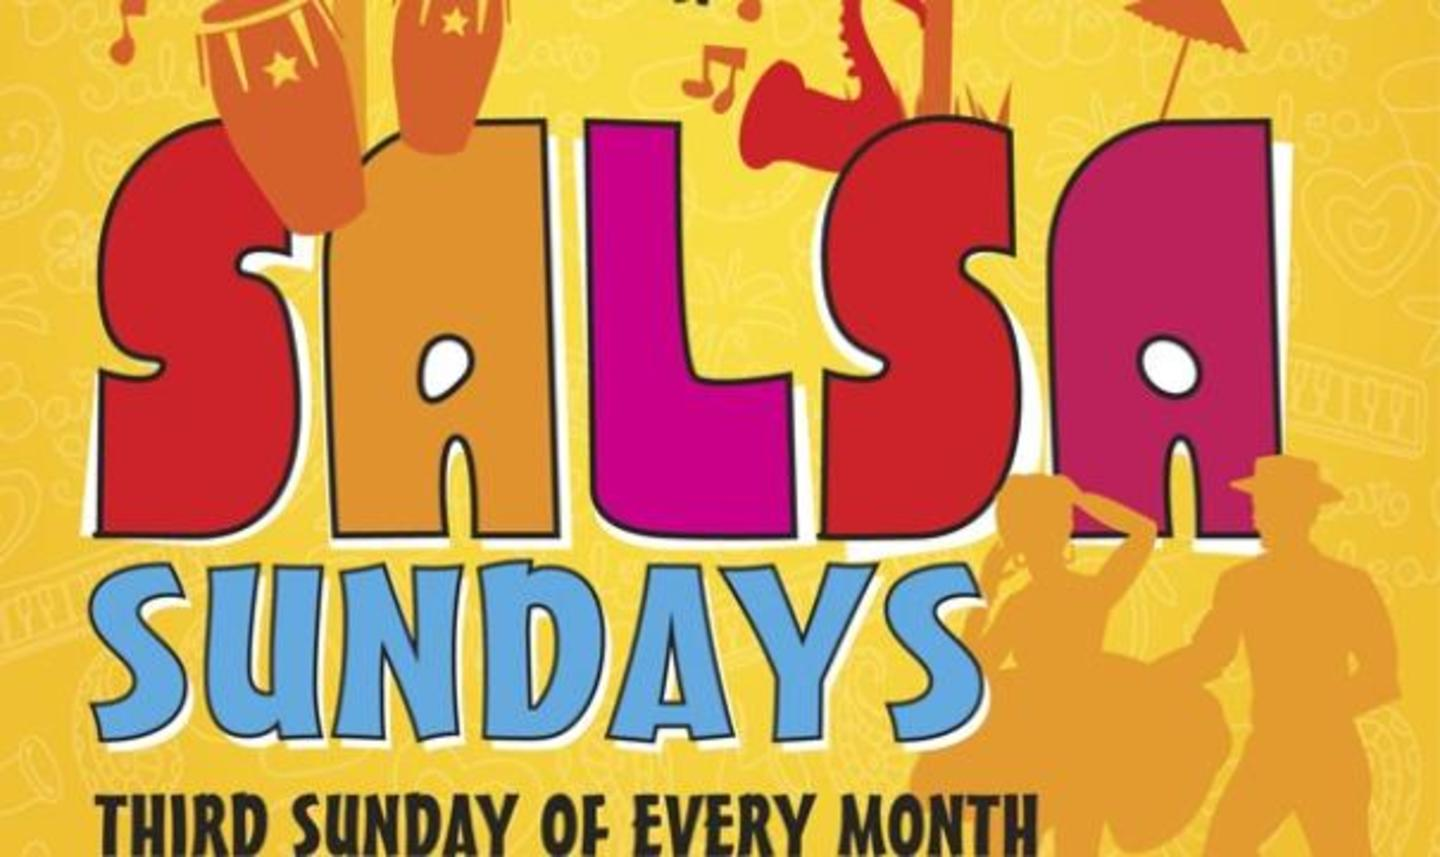 Salsa Sundays at The Mall of the Americas